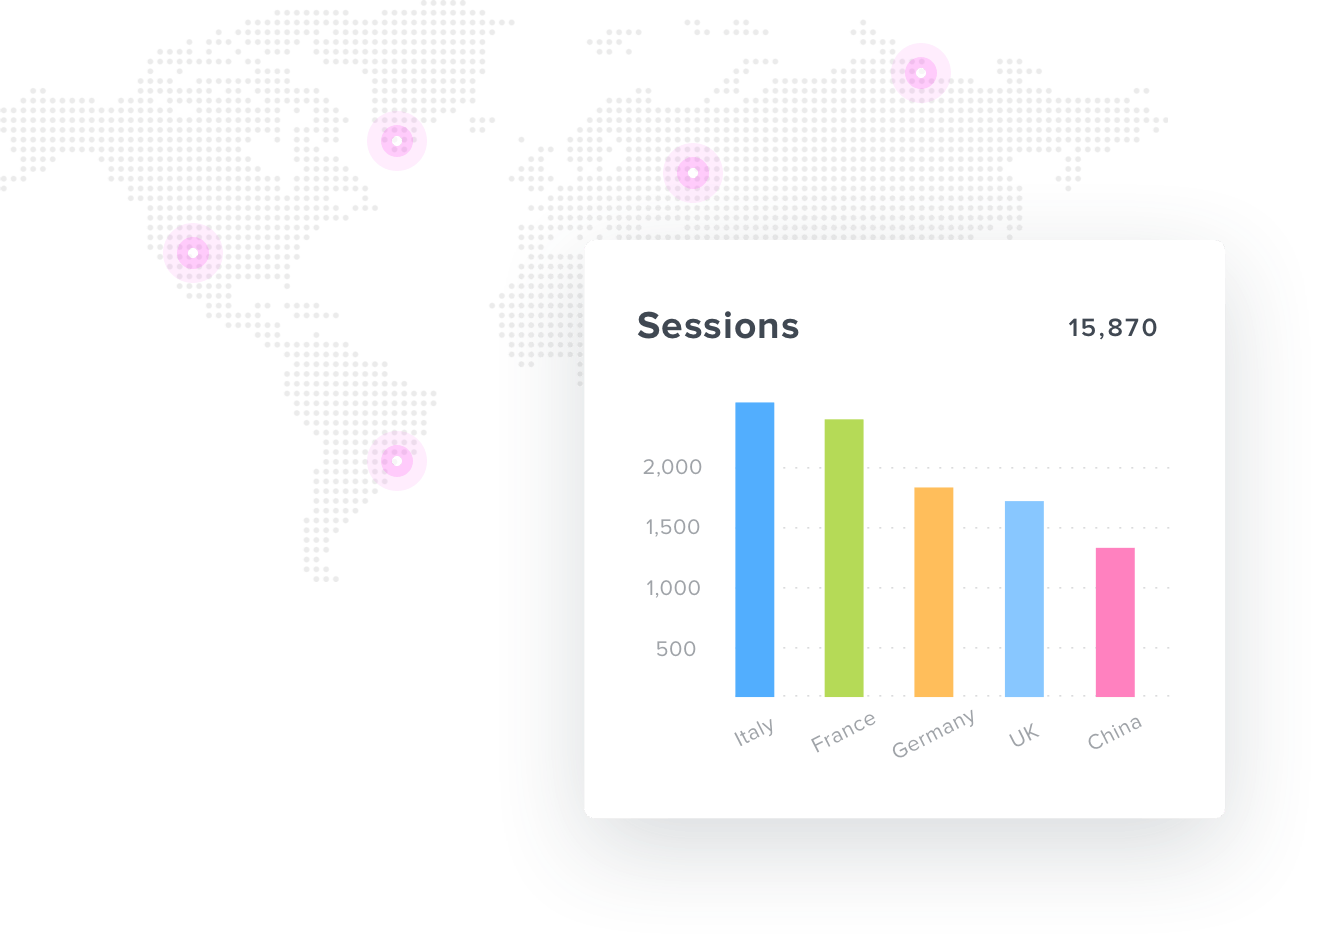 Sessions by country in the analytics dashboard